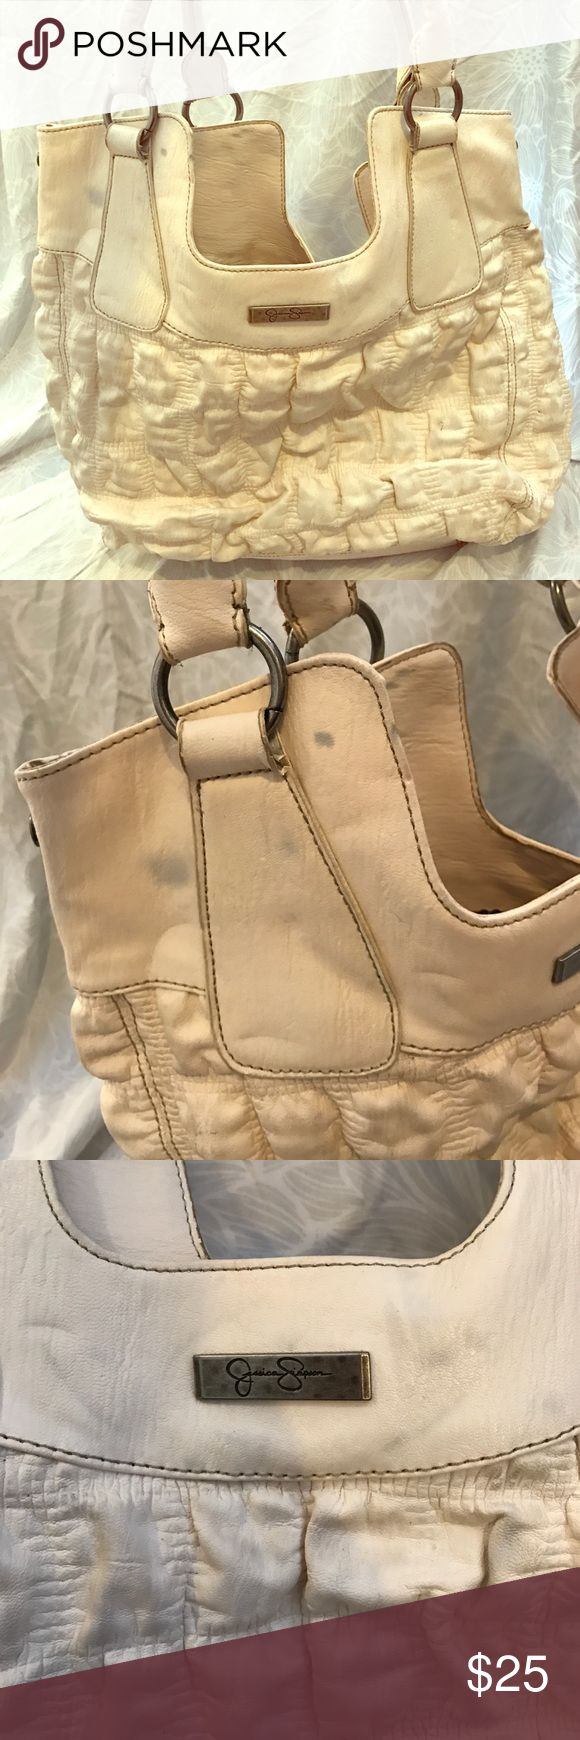 Jessica Simpson handbag Pre loved off-white Jessica Simpson handbag, needs a good wipe down. Inside is in PERFECT condition! Please note: there are very light blue stains from the bag rubbing on jeans when being carried. Price reflects this! Jessica Simpson Bags Totes